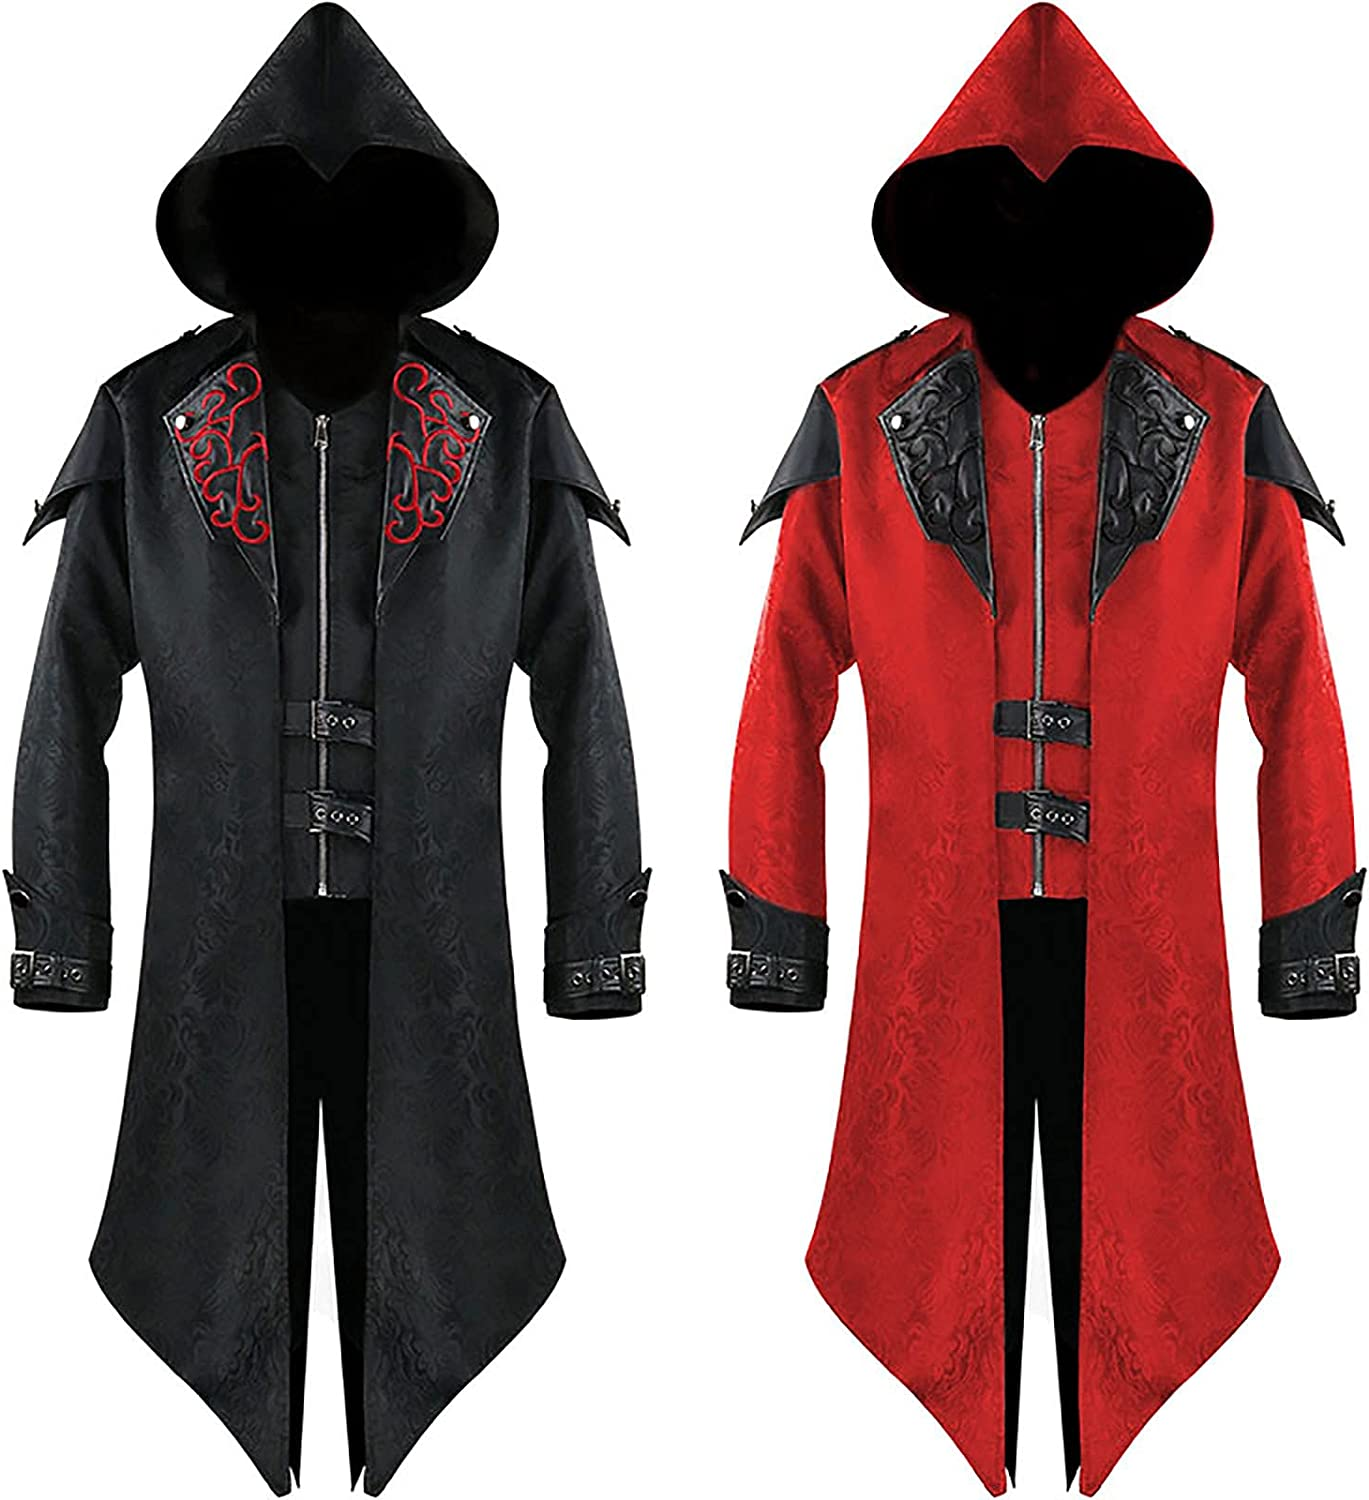 Special Campaign Men's Steampunk Gothic Hooded Leather Cosp Jacket Halloween Coat Soldering